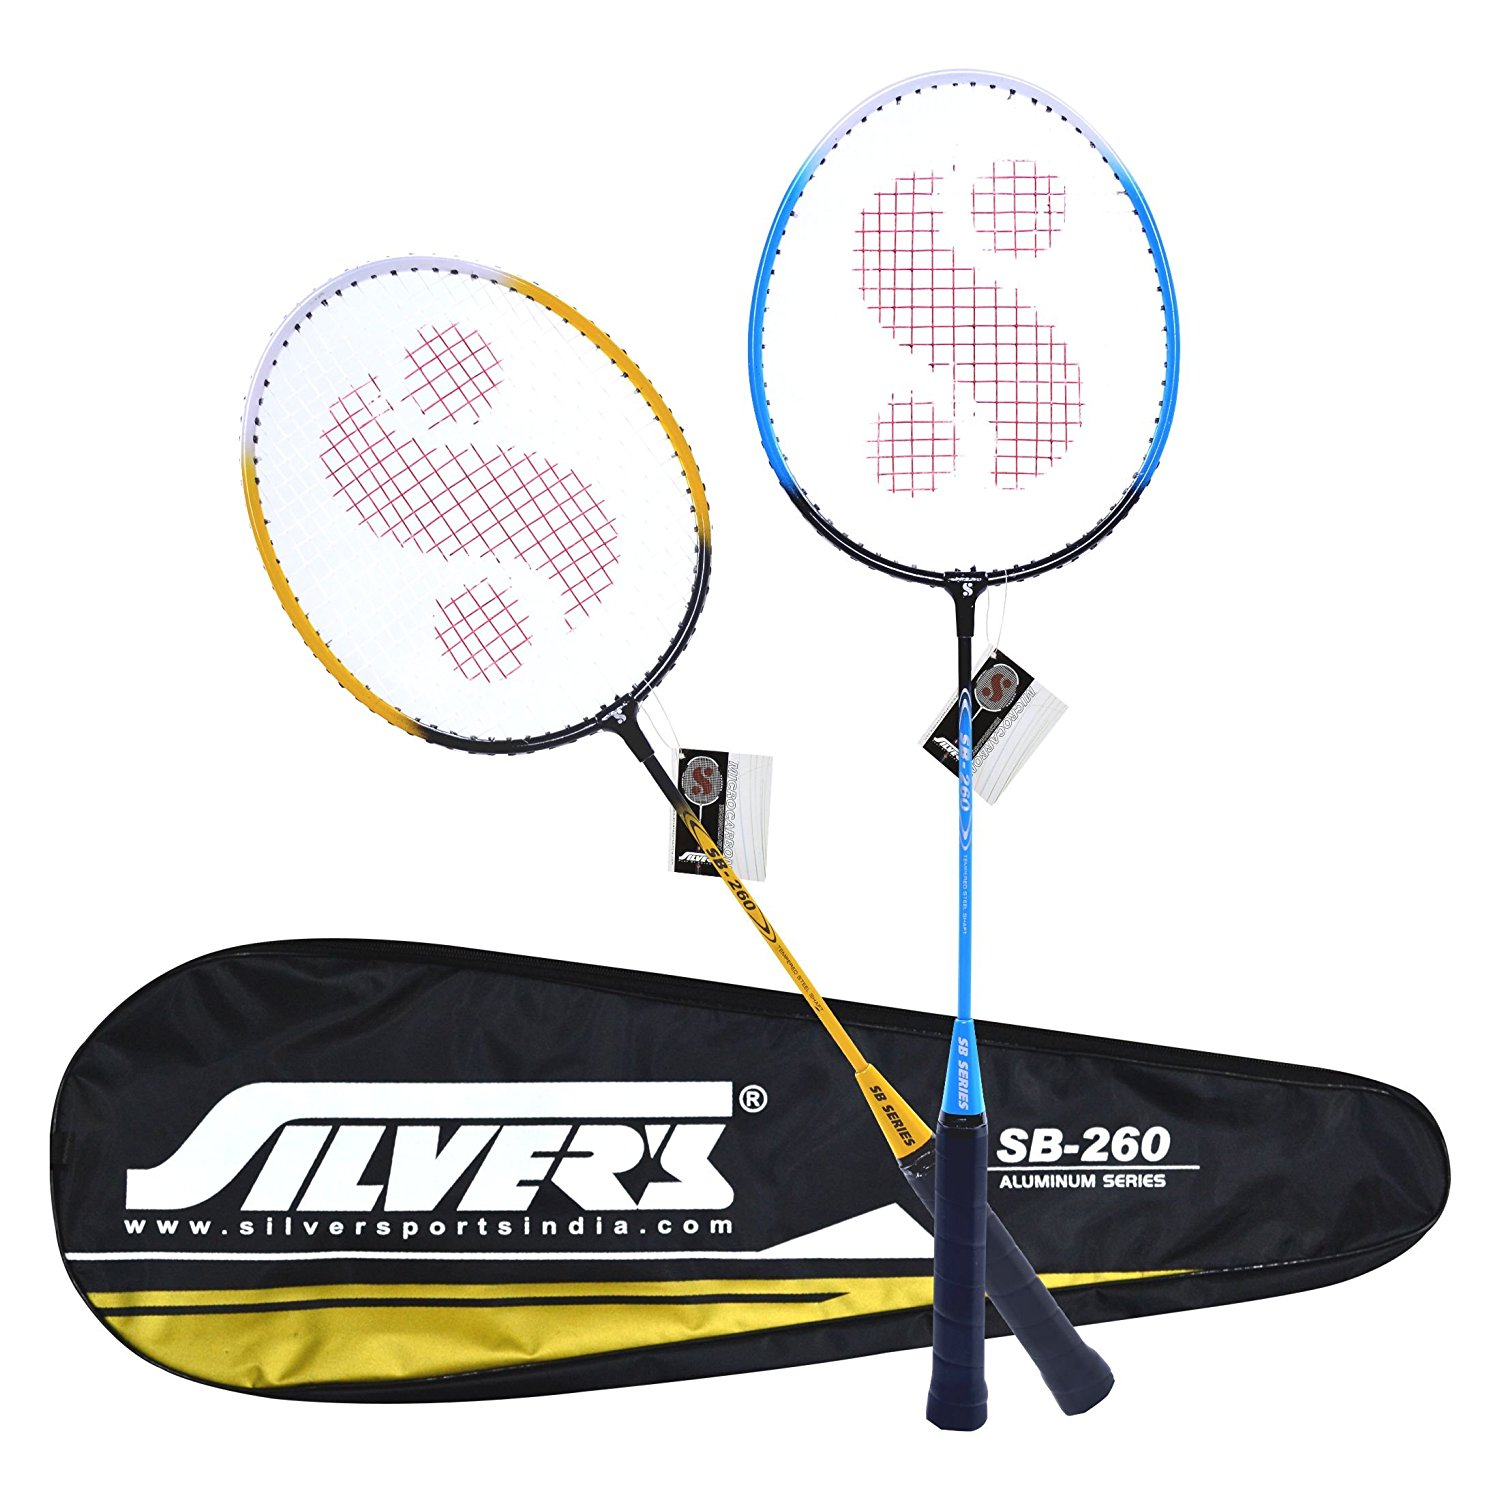 Silver's SB-260 COMBO1 Badminton Kit At ₹ 434 - Amazon